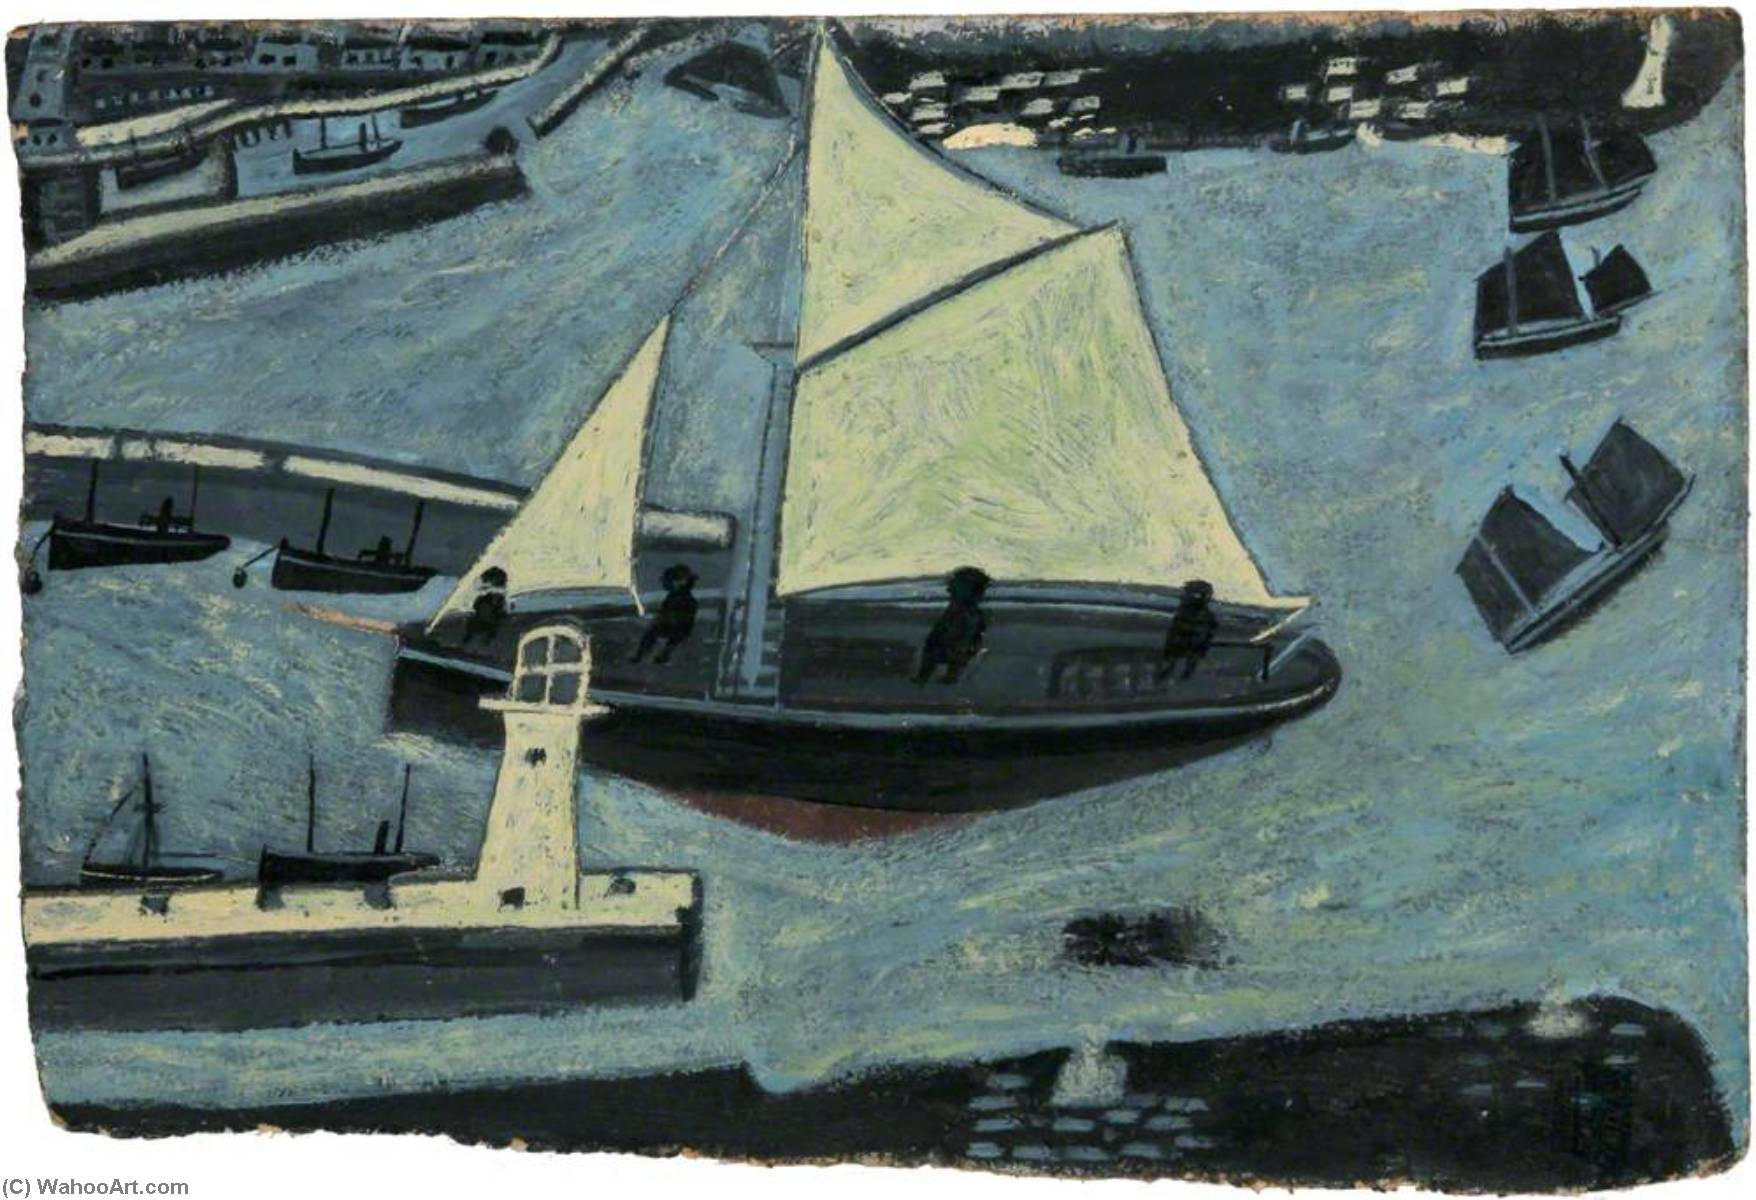 Пензенс Гавань  ВХОД  по Alfred Wallis (1855-1942, United Kingdom) | WahooArt.com